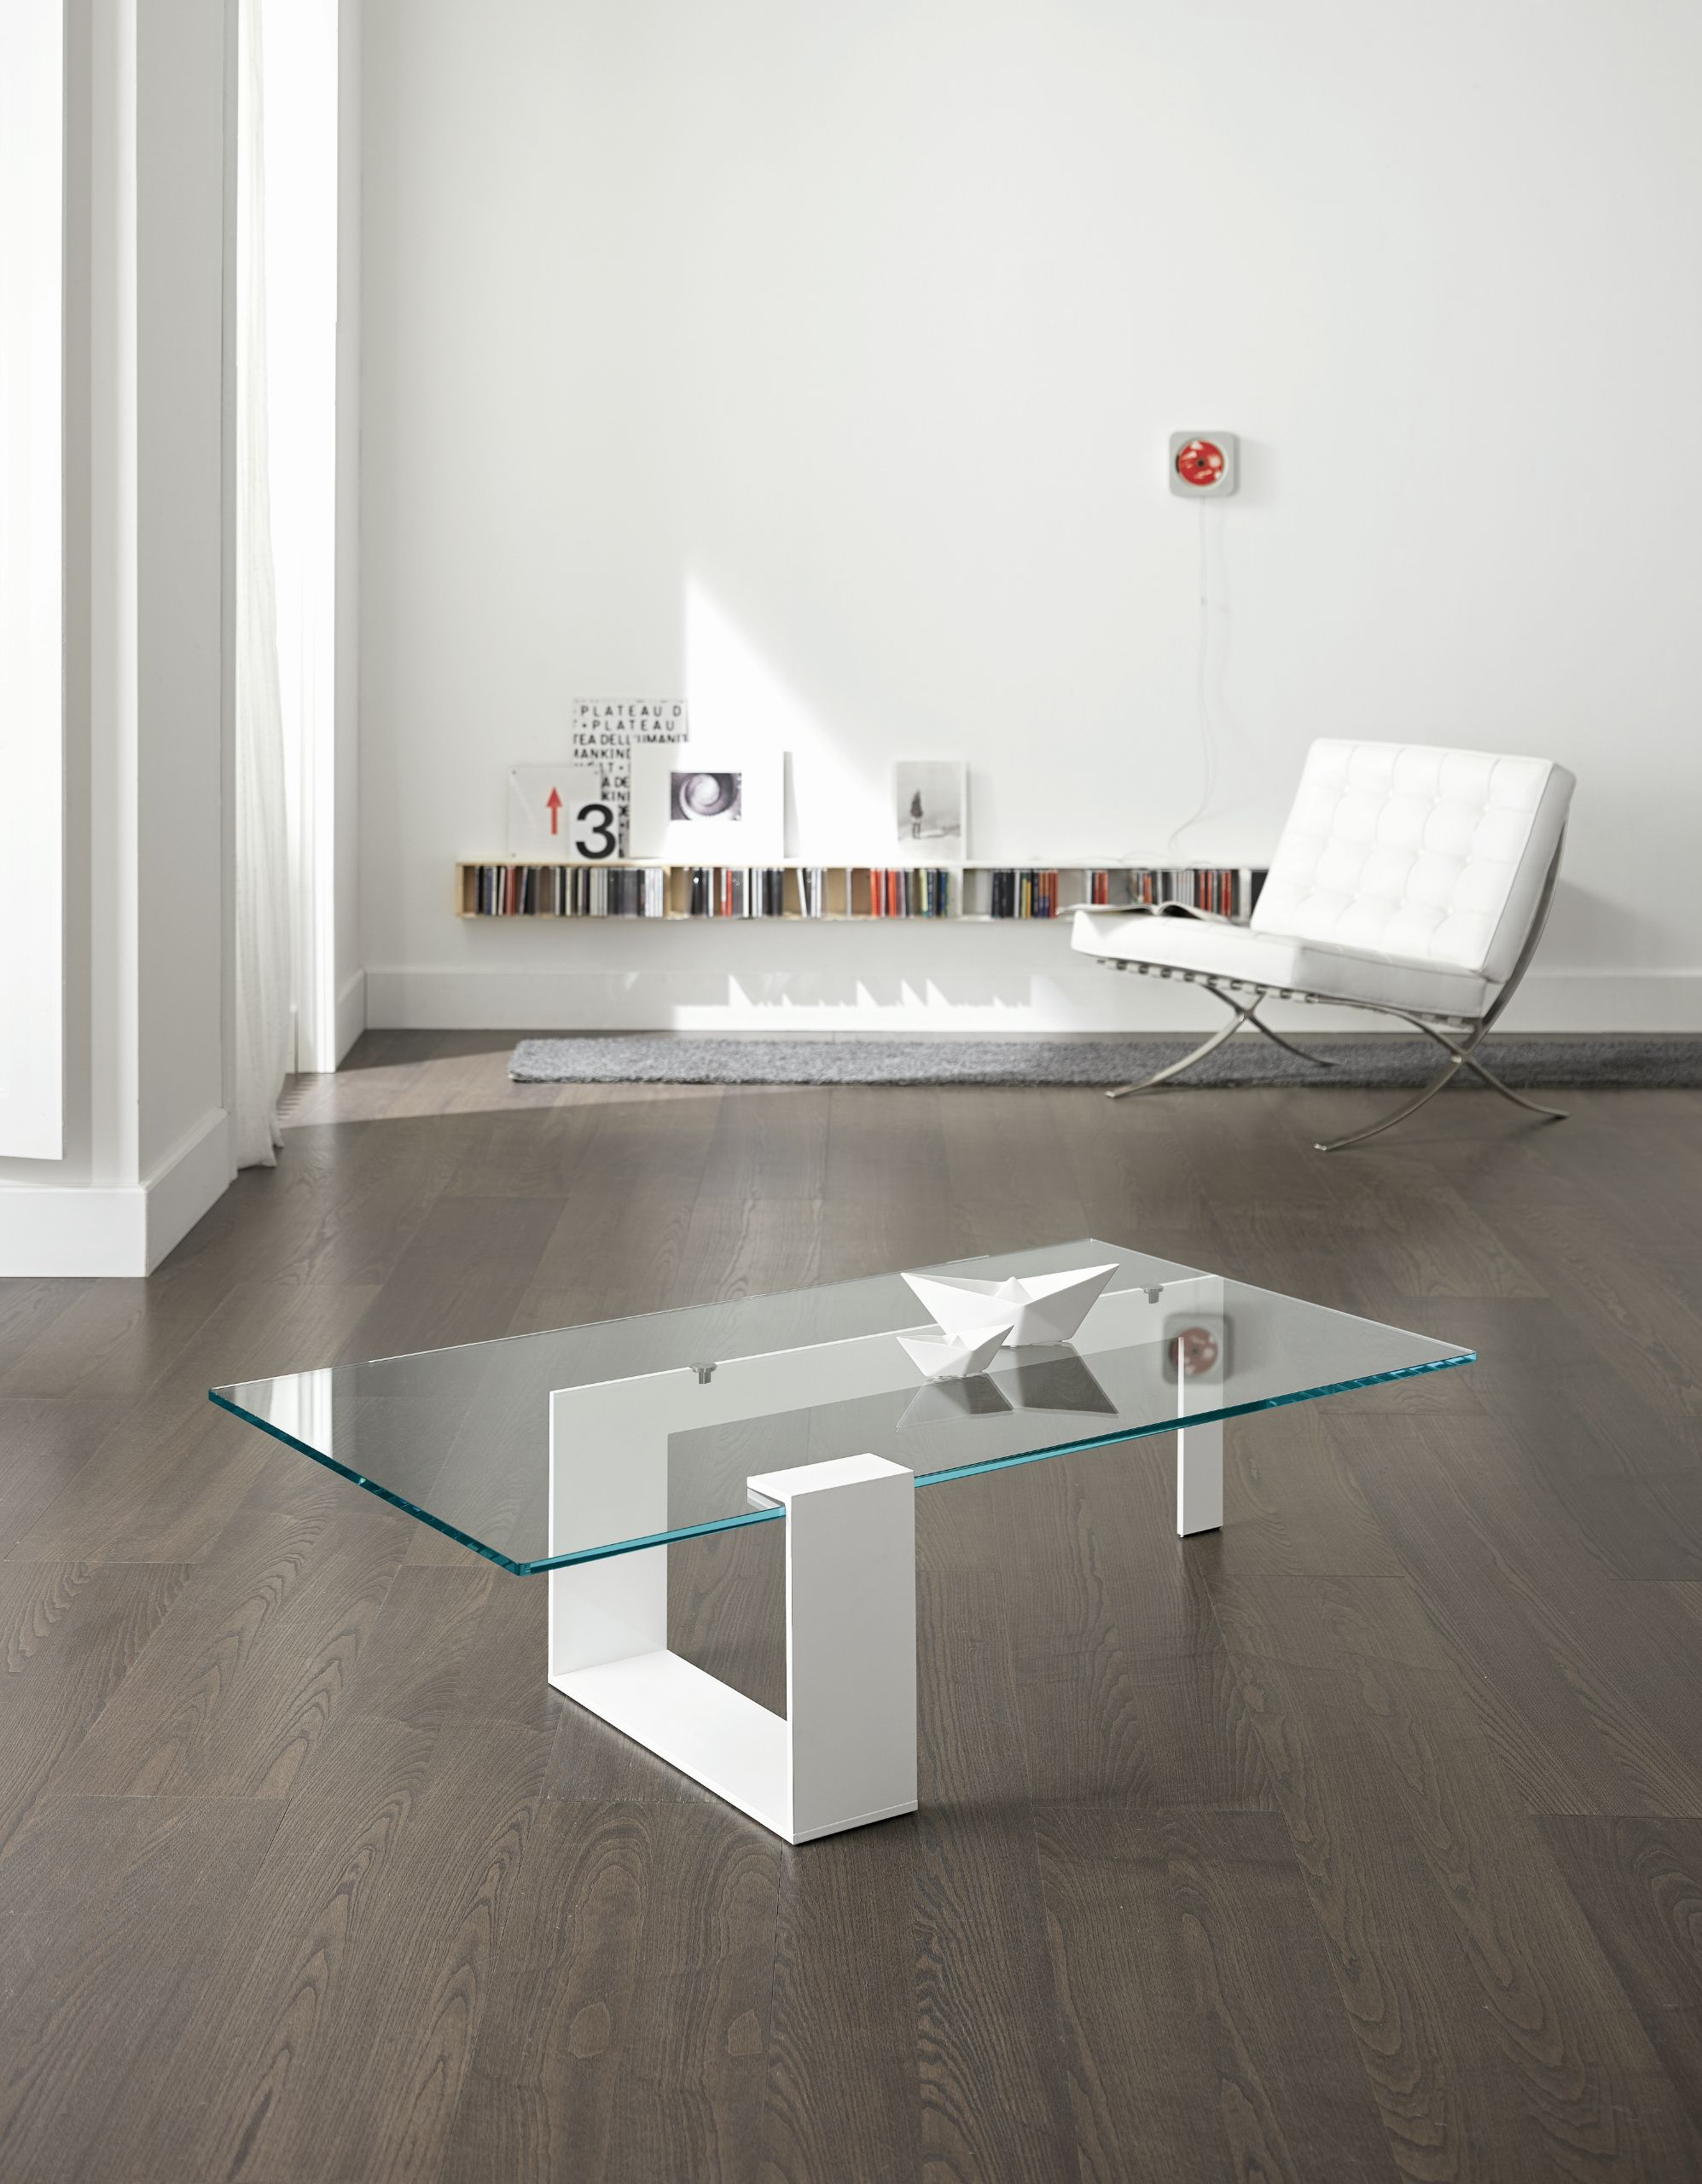 Plinsky By Tonelli Design, #Glass Coffee #Table Design Giulio Mancini